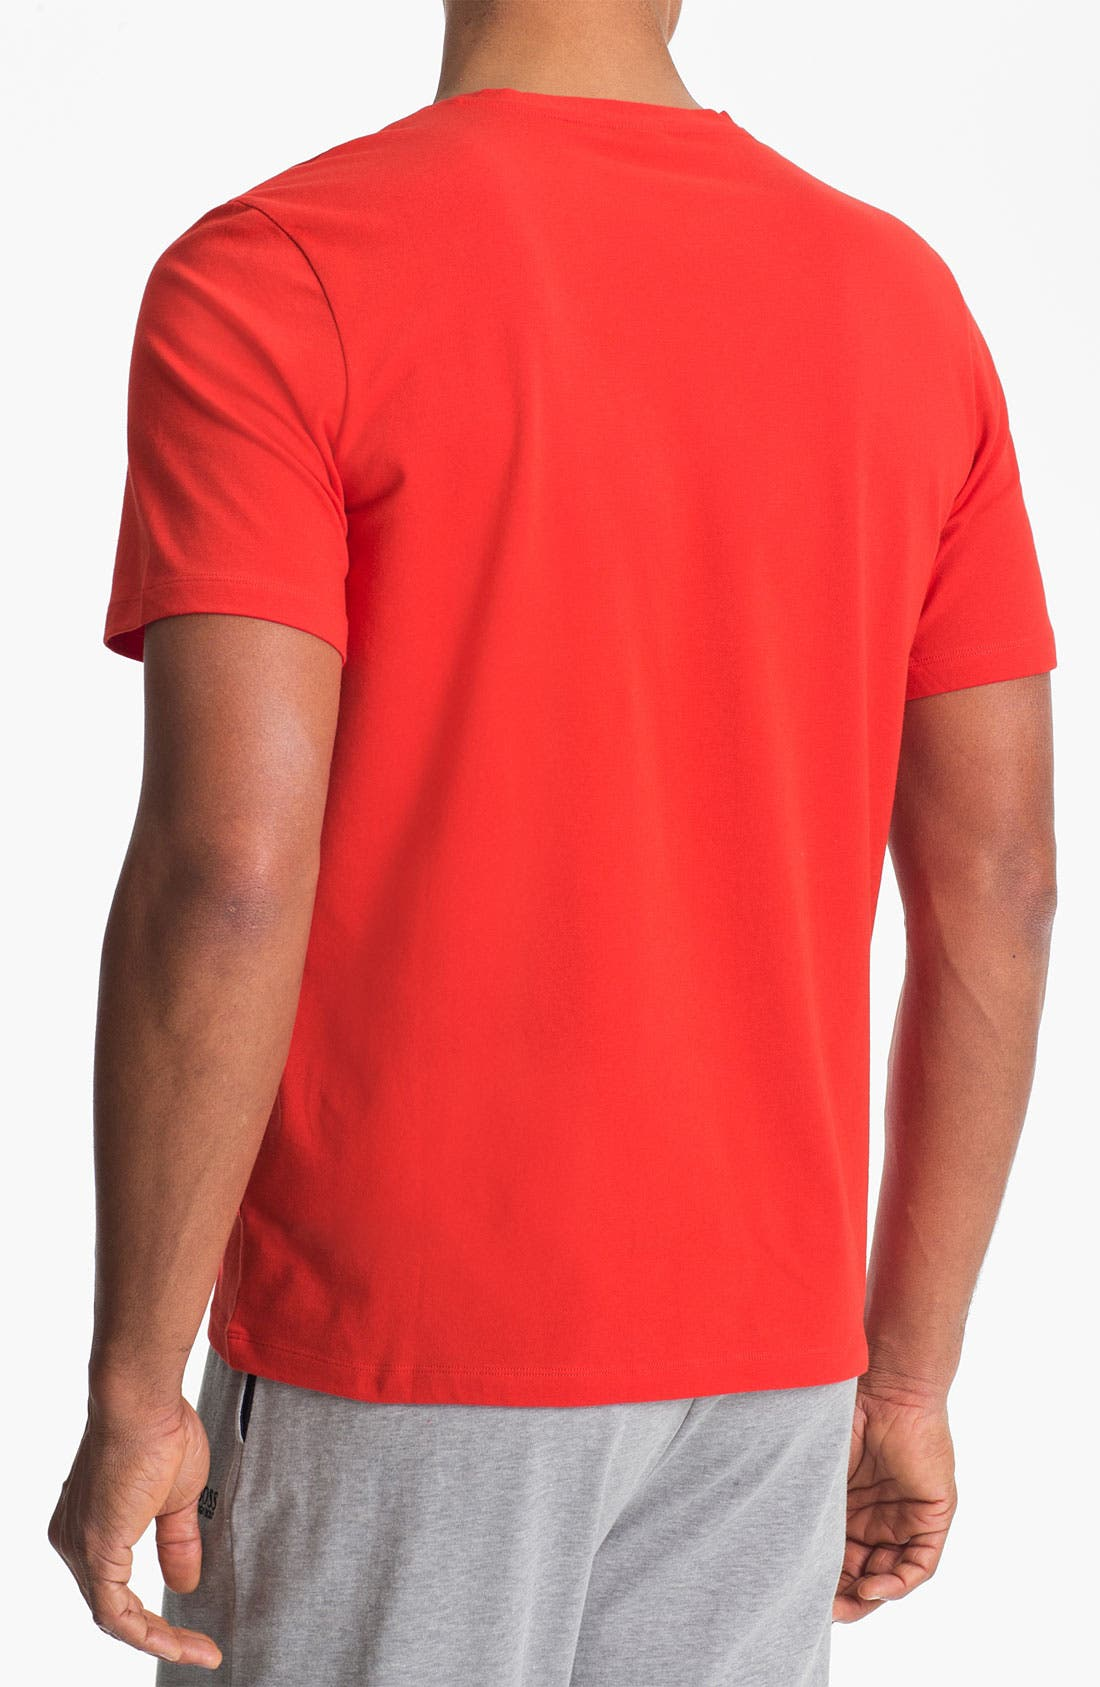 Alternate Image 2  - BOSS HUGO BOSS 'Innovation' V-Neck T-Shirt